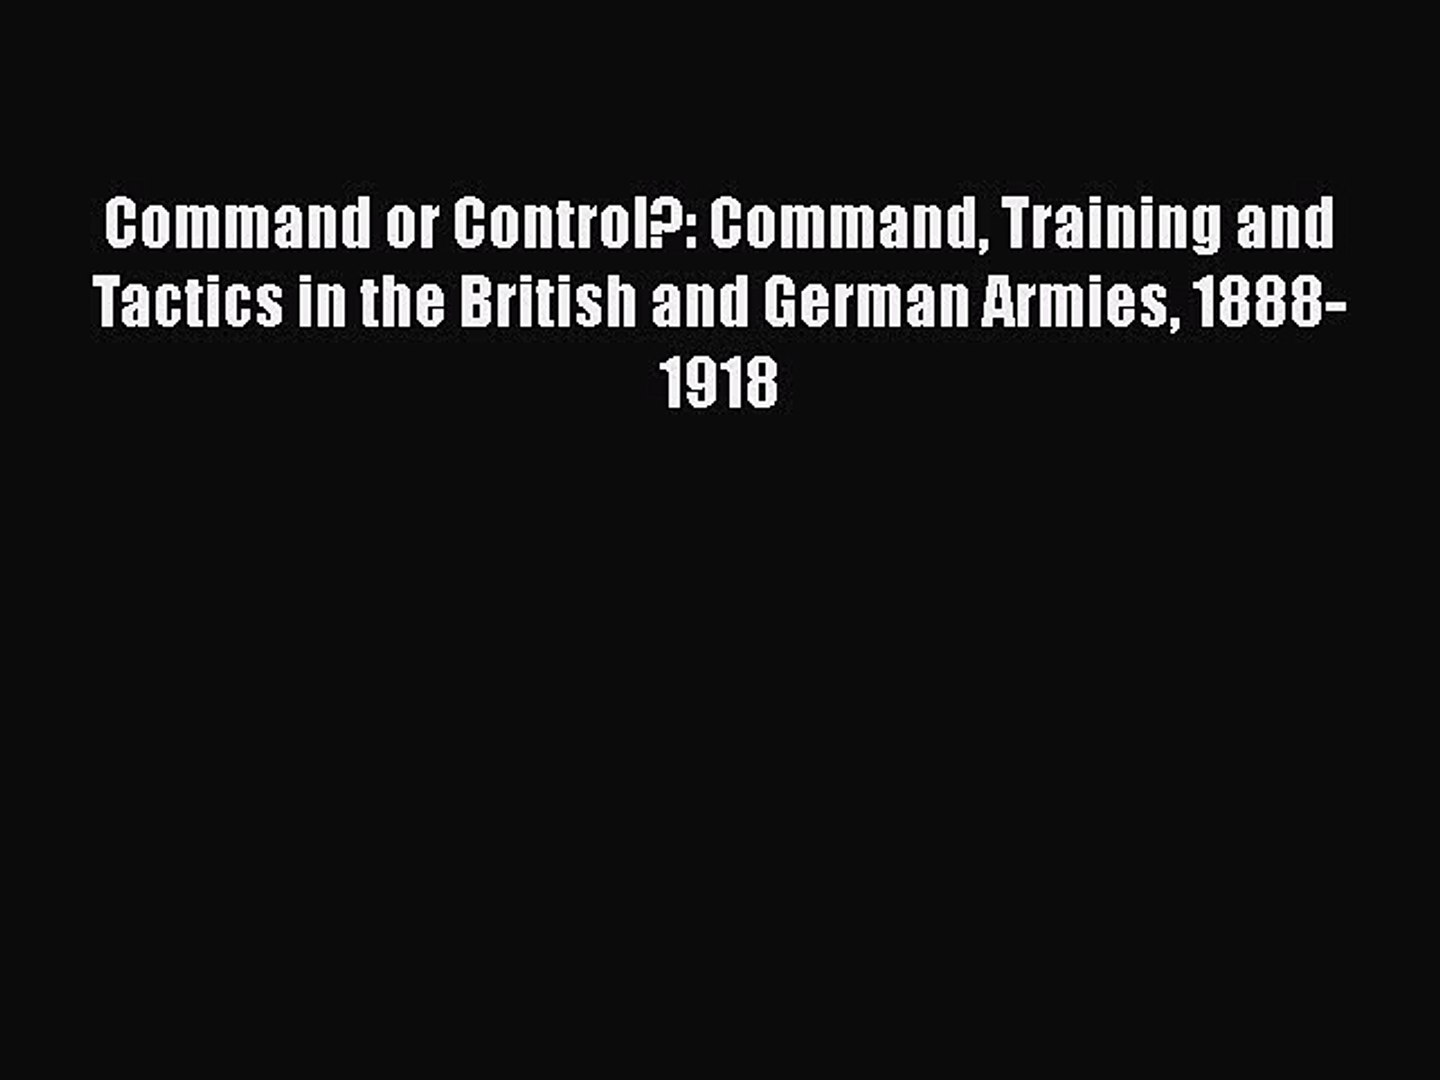 [PDF] Command or Control?: Command Training and Tactics in the British and German Armies 1888-1918